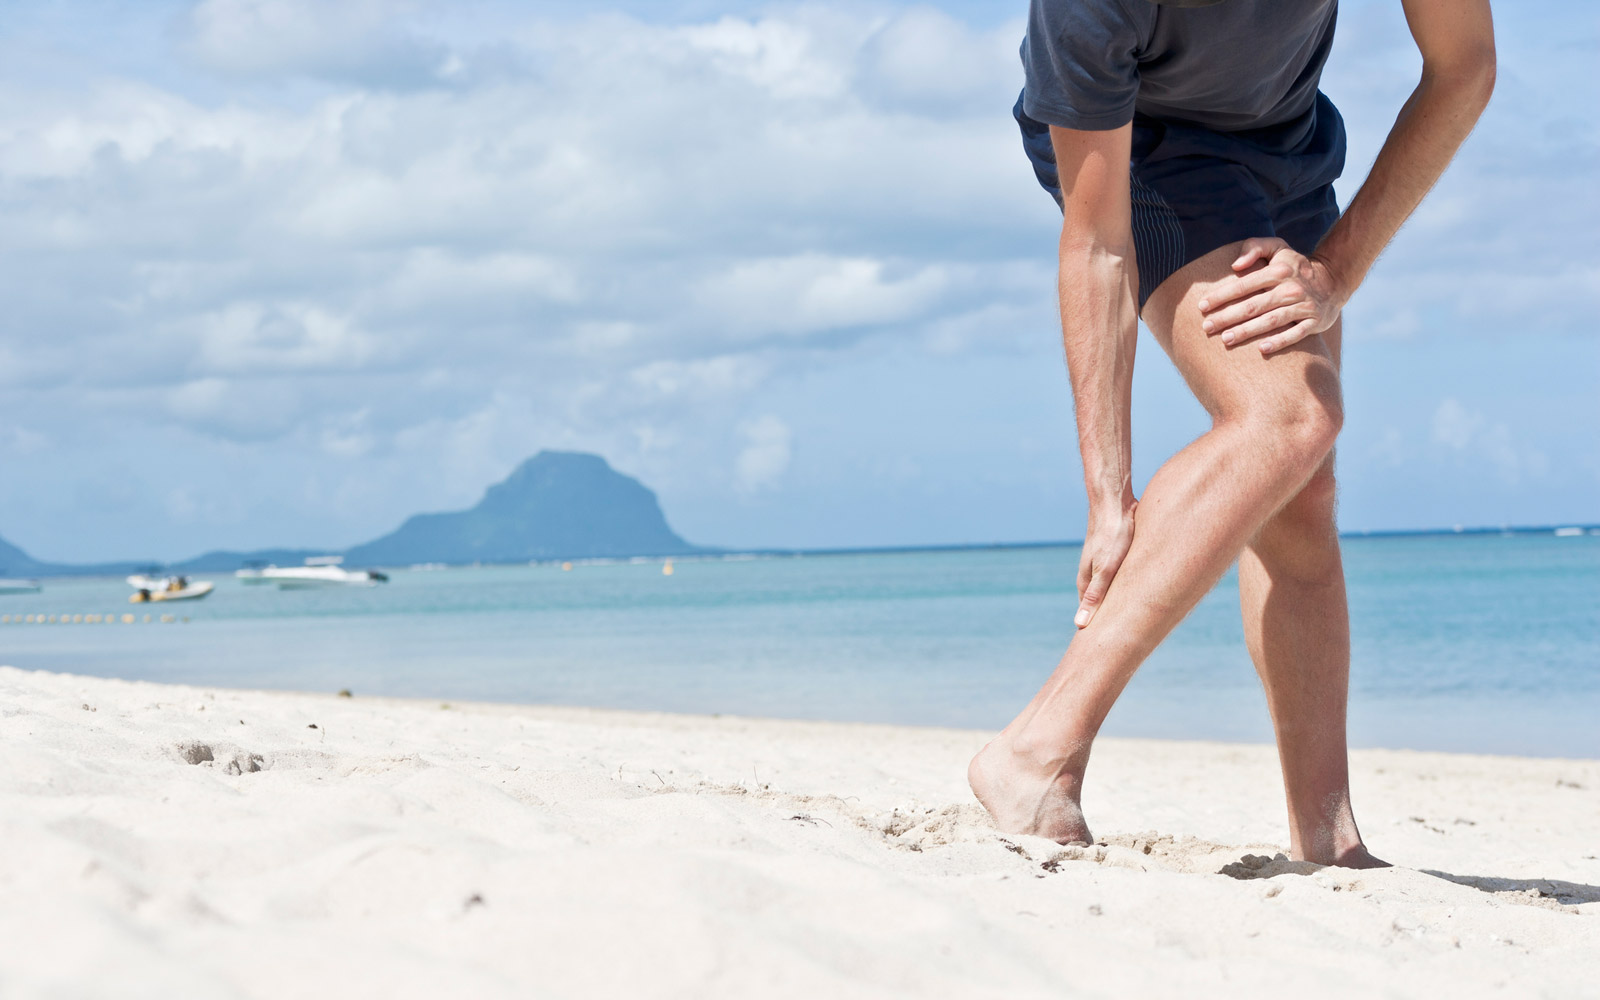 """""""Typical pain in upper achilles tendon (muscular/ligamental transition) of a male jogger.Location: Flic en Flac, Mauritius."""""""